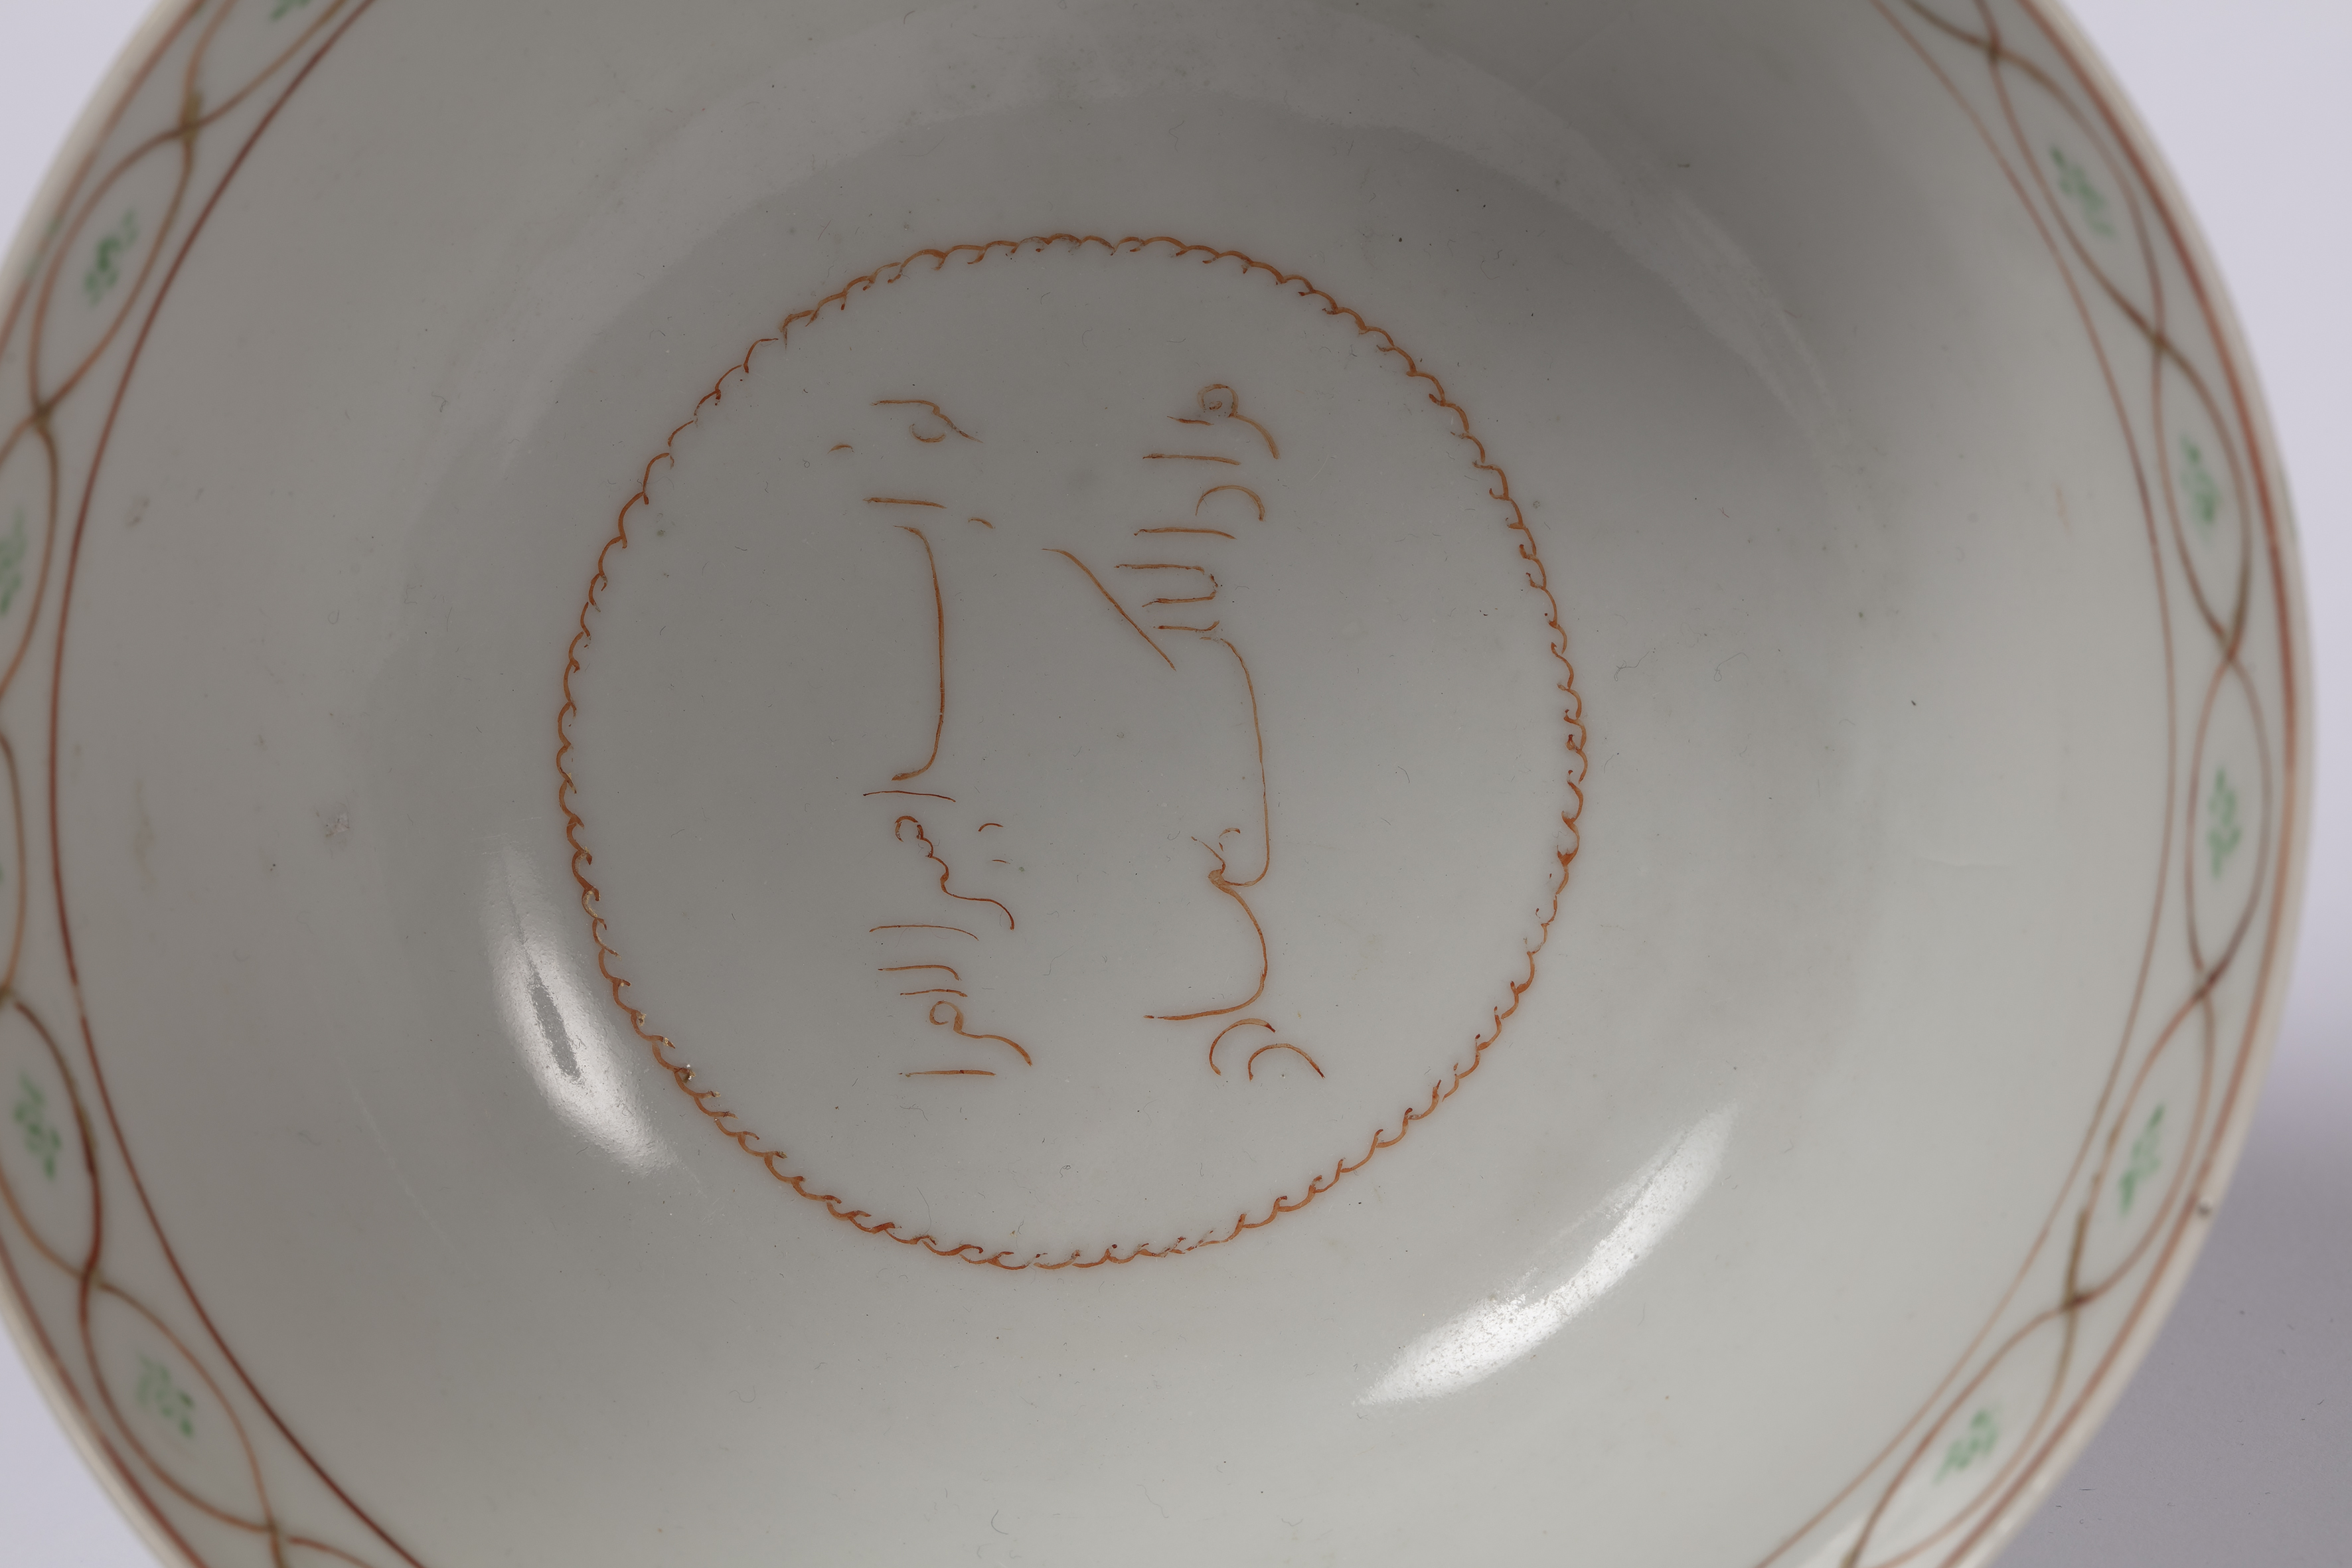 Porcelain sweetmeat dish Chinese, Qianlong of circular form and greenish celadon-type glaze, with - Image 4 of 4